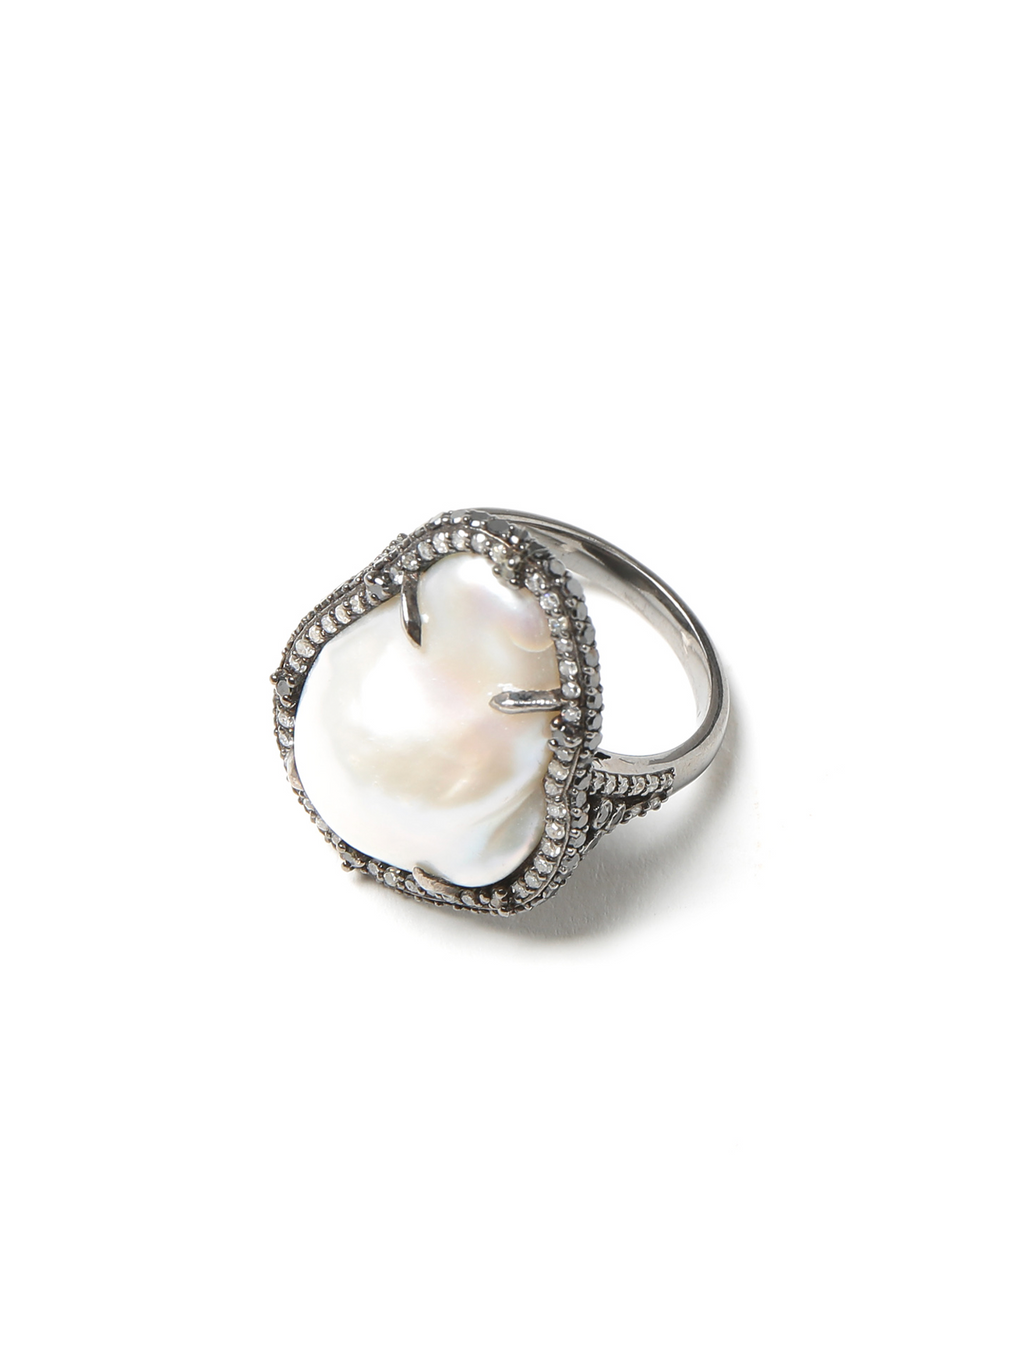 Margo Morrison Pearl and Pave Diamond Ring - Sterling Silver